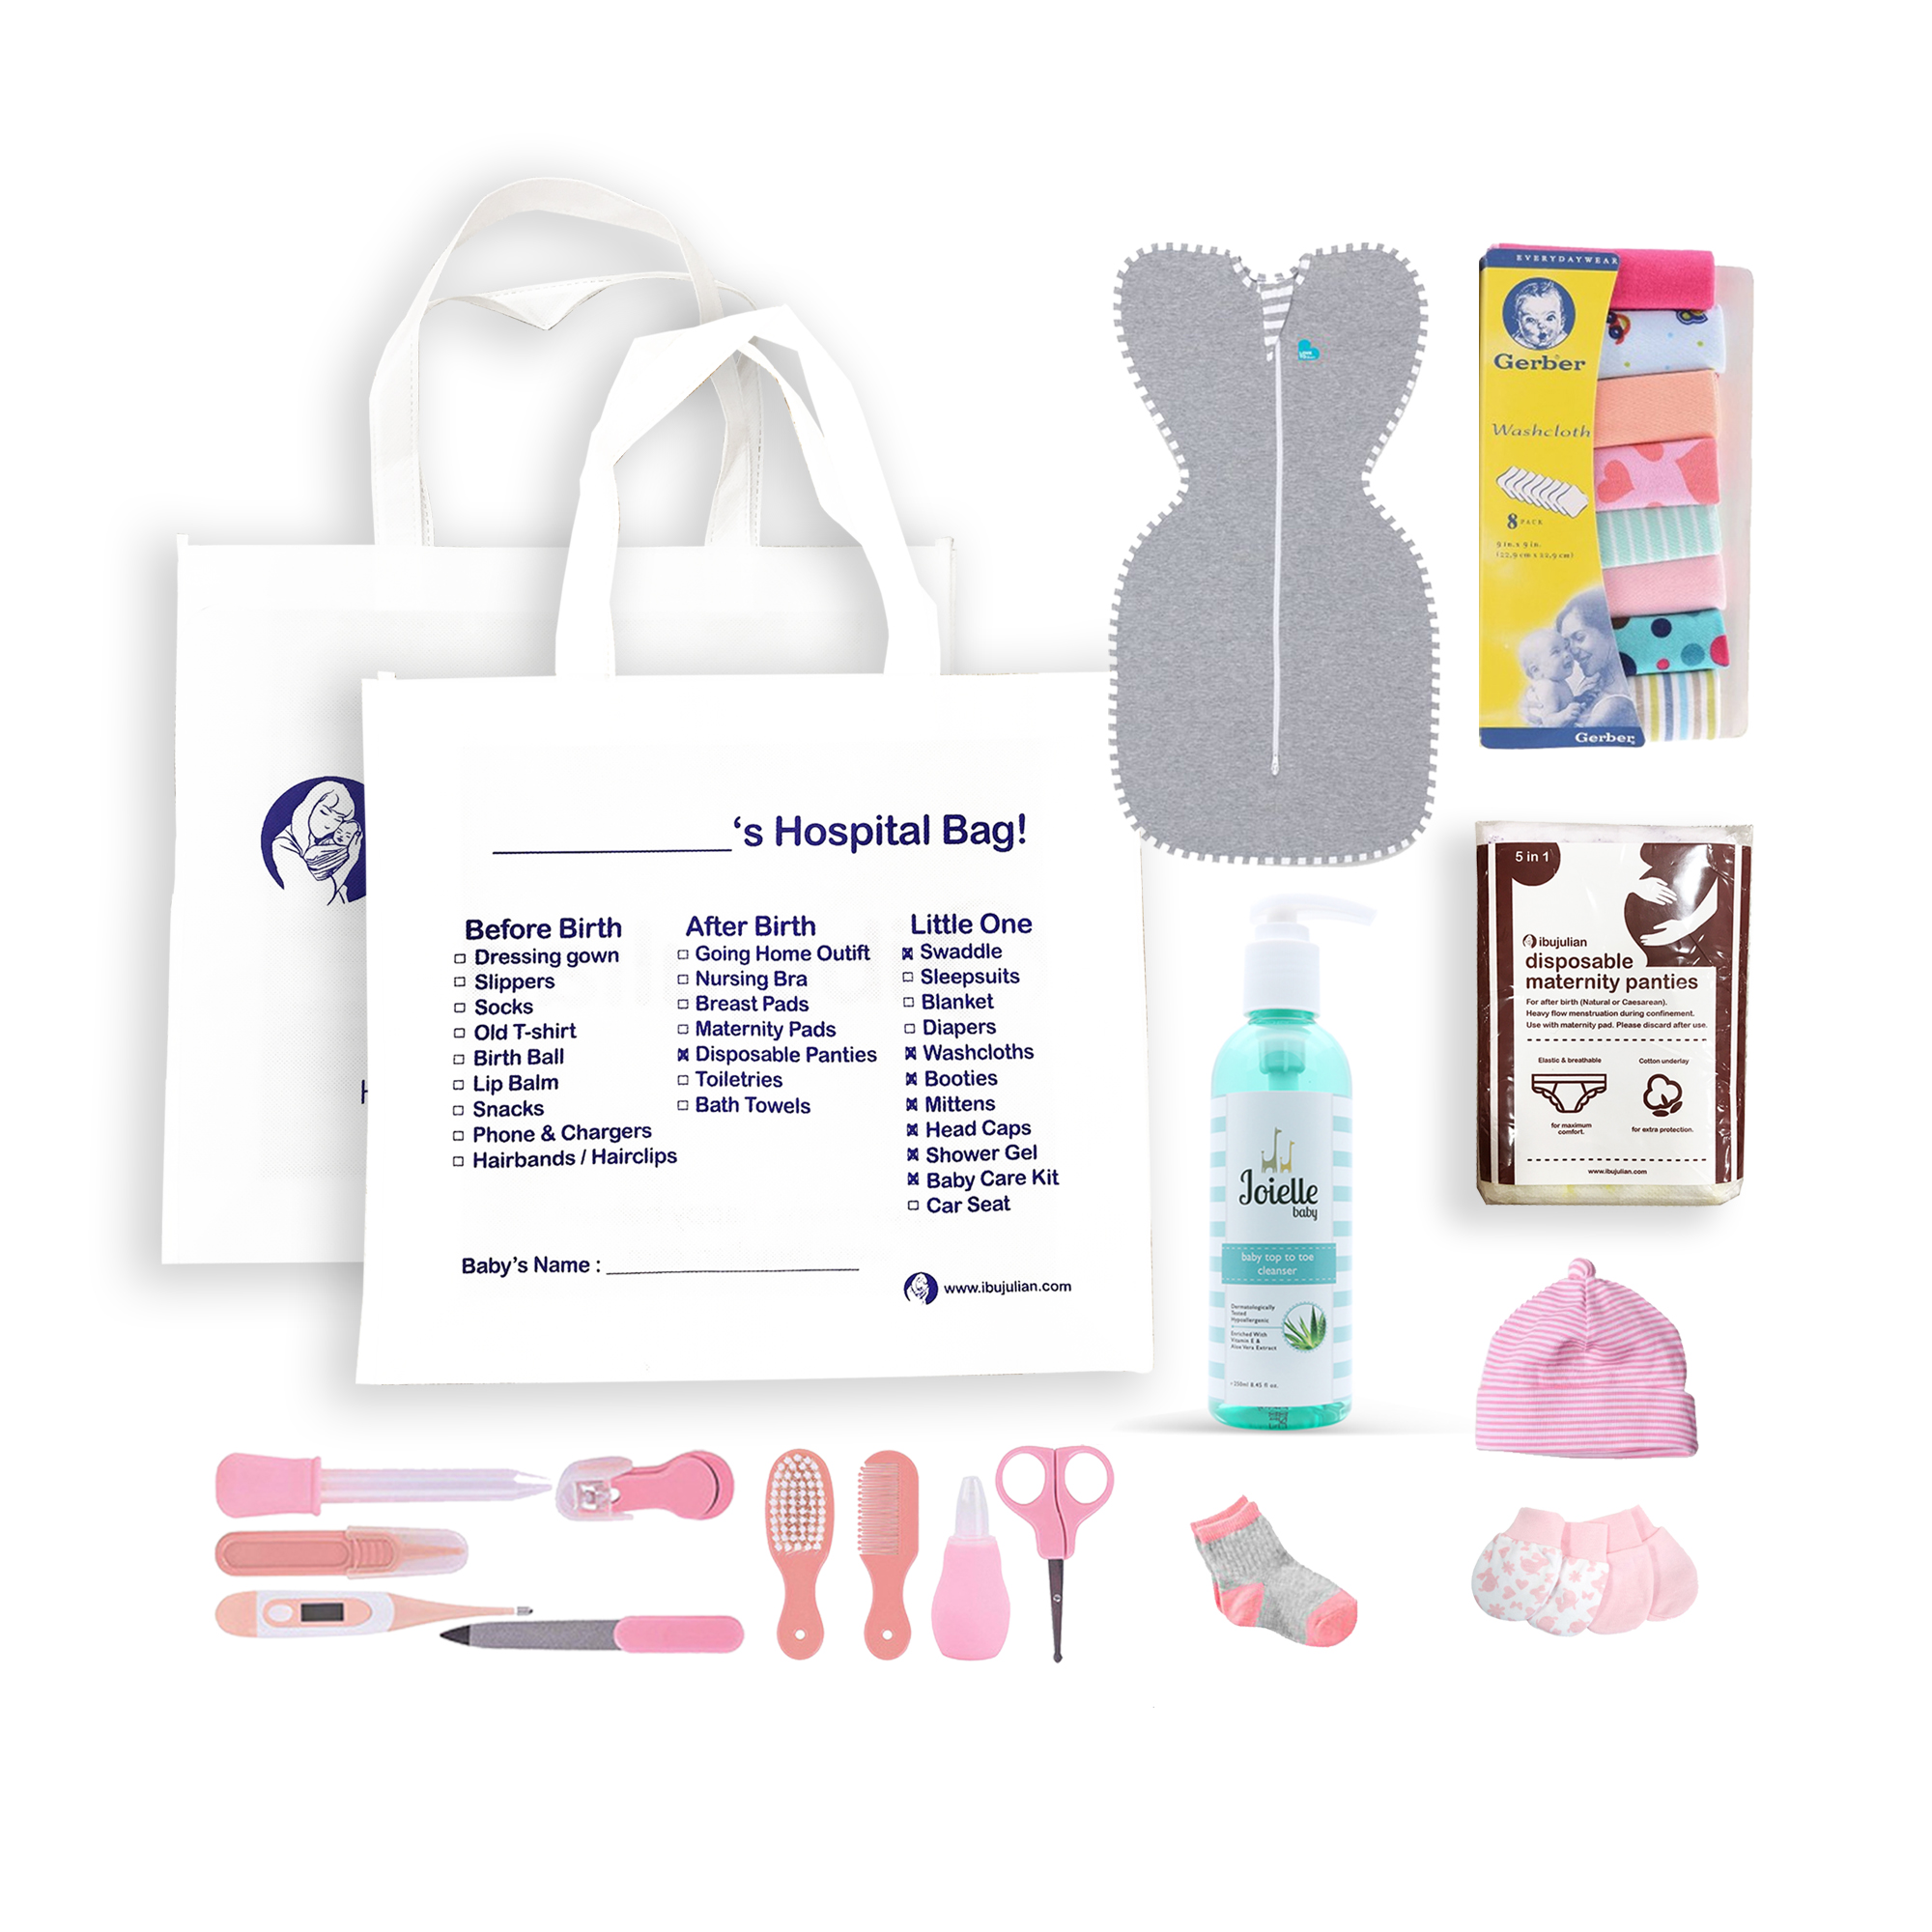 hospital bag ibujulian.jpg